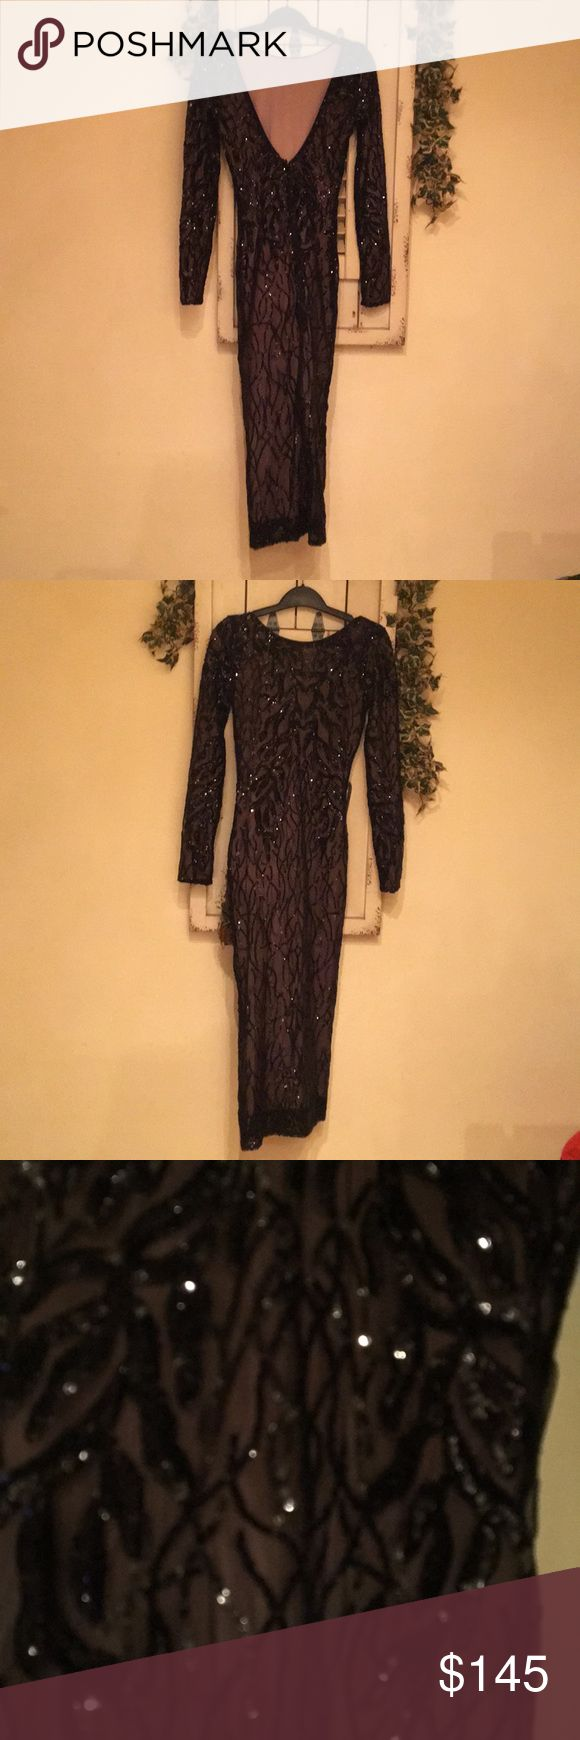 Dress the population Catalina vine dress Beautiful black sequin vine midi dress, nude lining. Worn once for a few hours. It's been dry cleaned. This dress is perfect. Fits beautifully, perfect condition. Multiple compliments when I wore it. Low back but can wear strapless bra if needed. Dress the Population Dresses Midi